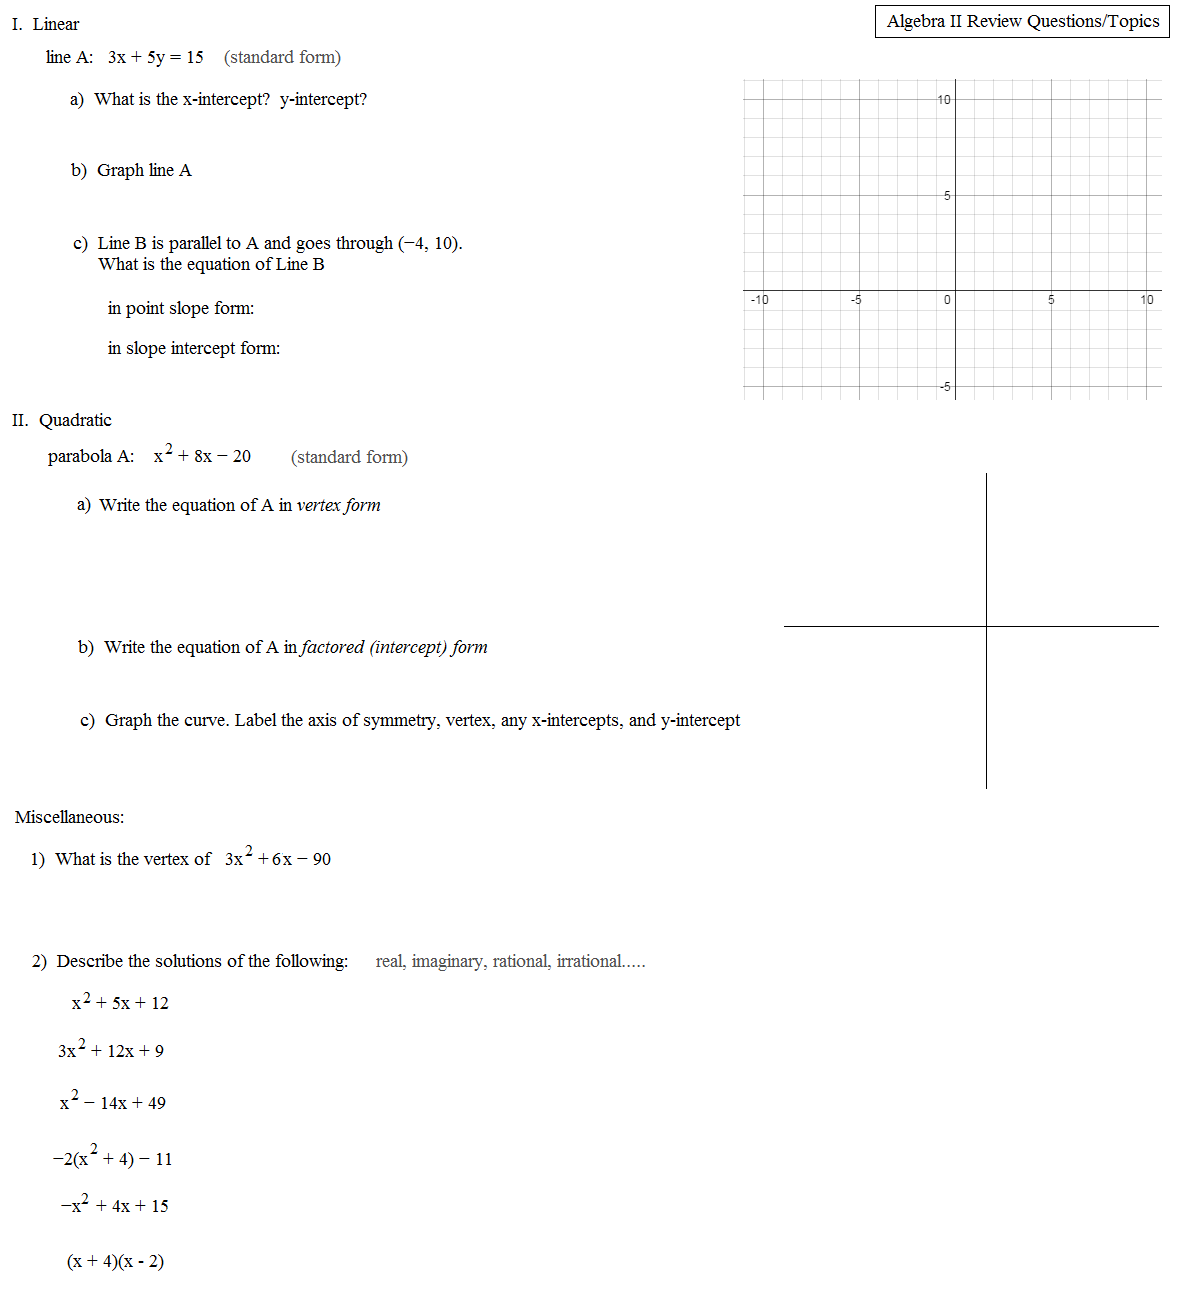 worksheet Algebra Ii Worksheets math plane algebra ii review 5 1st semester finals test summary worksheet 1 questions 2 questions